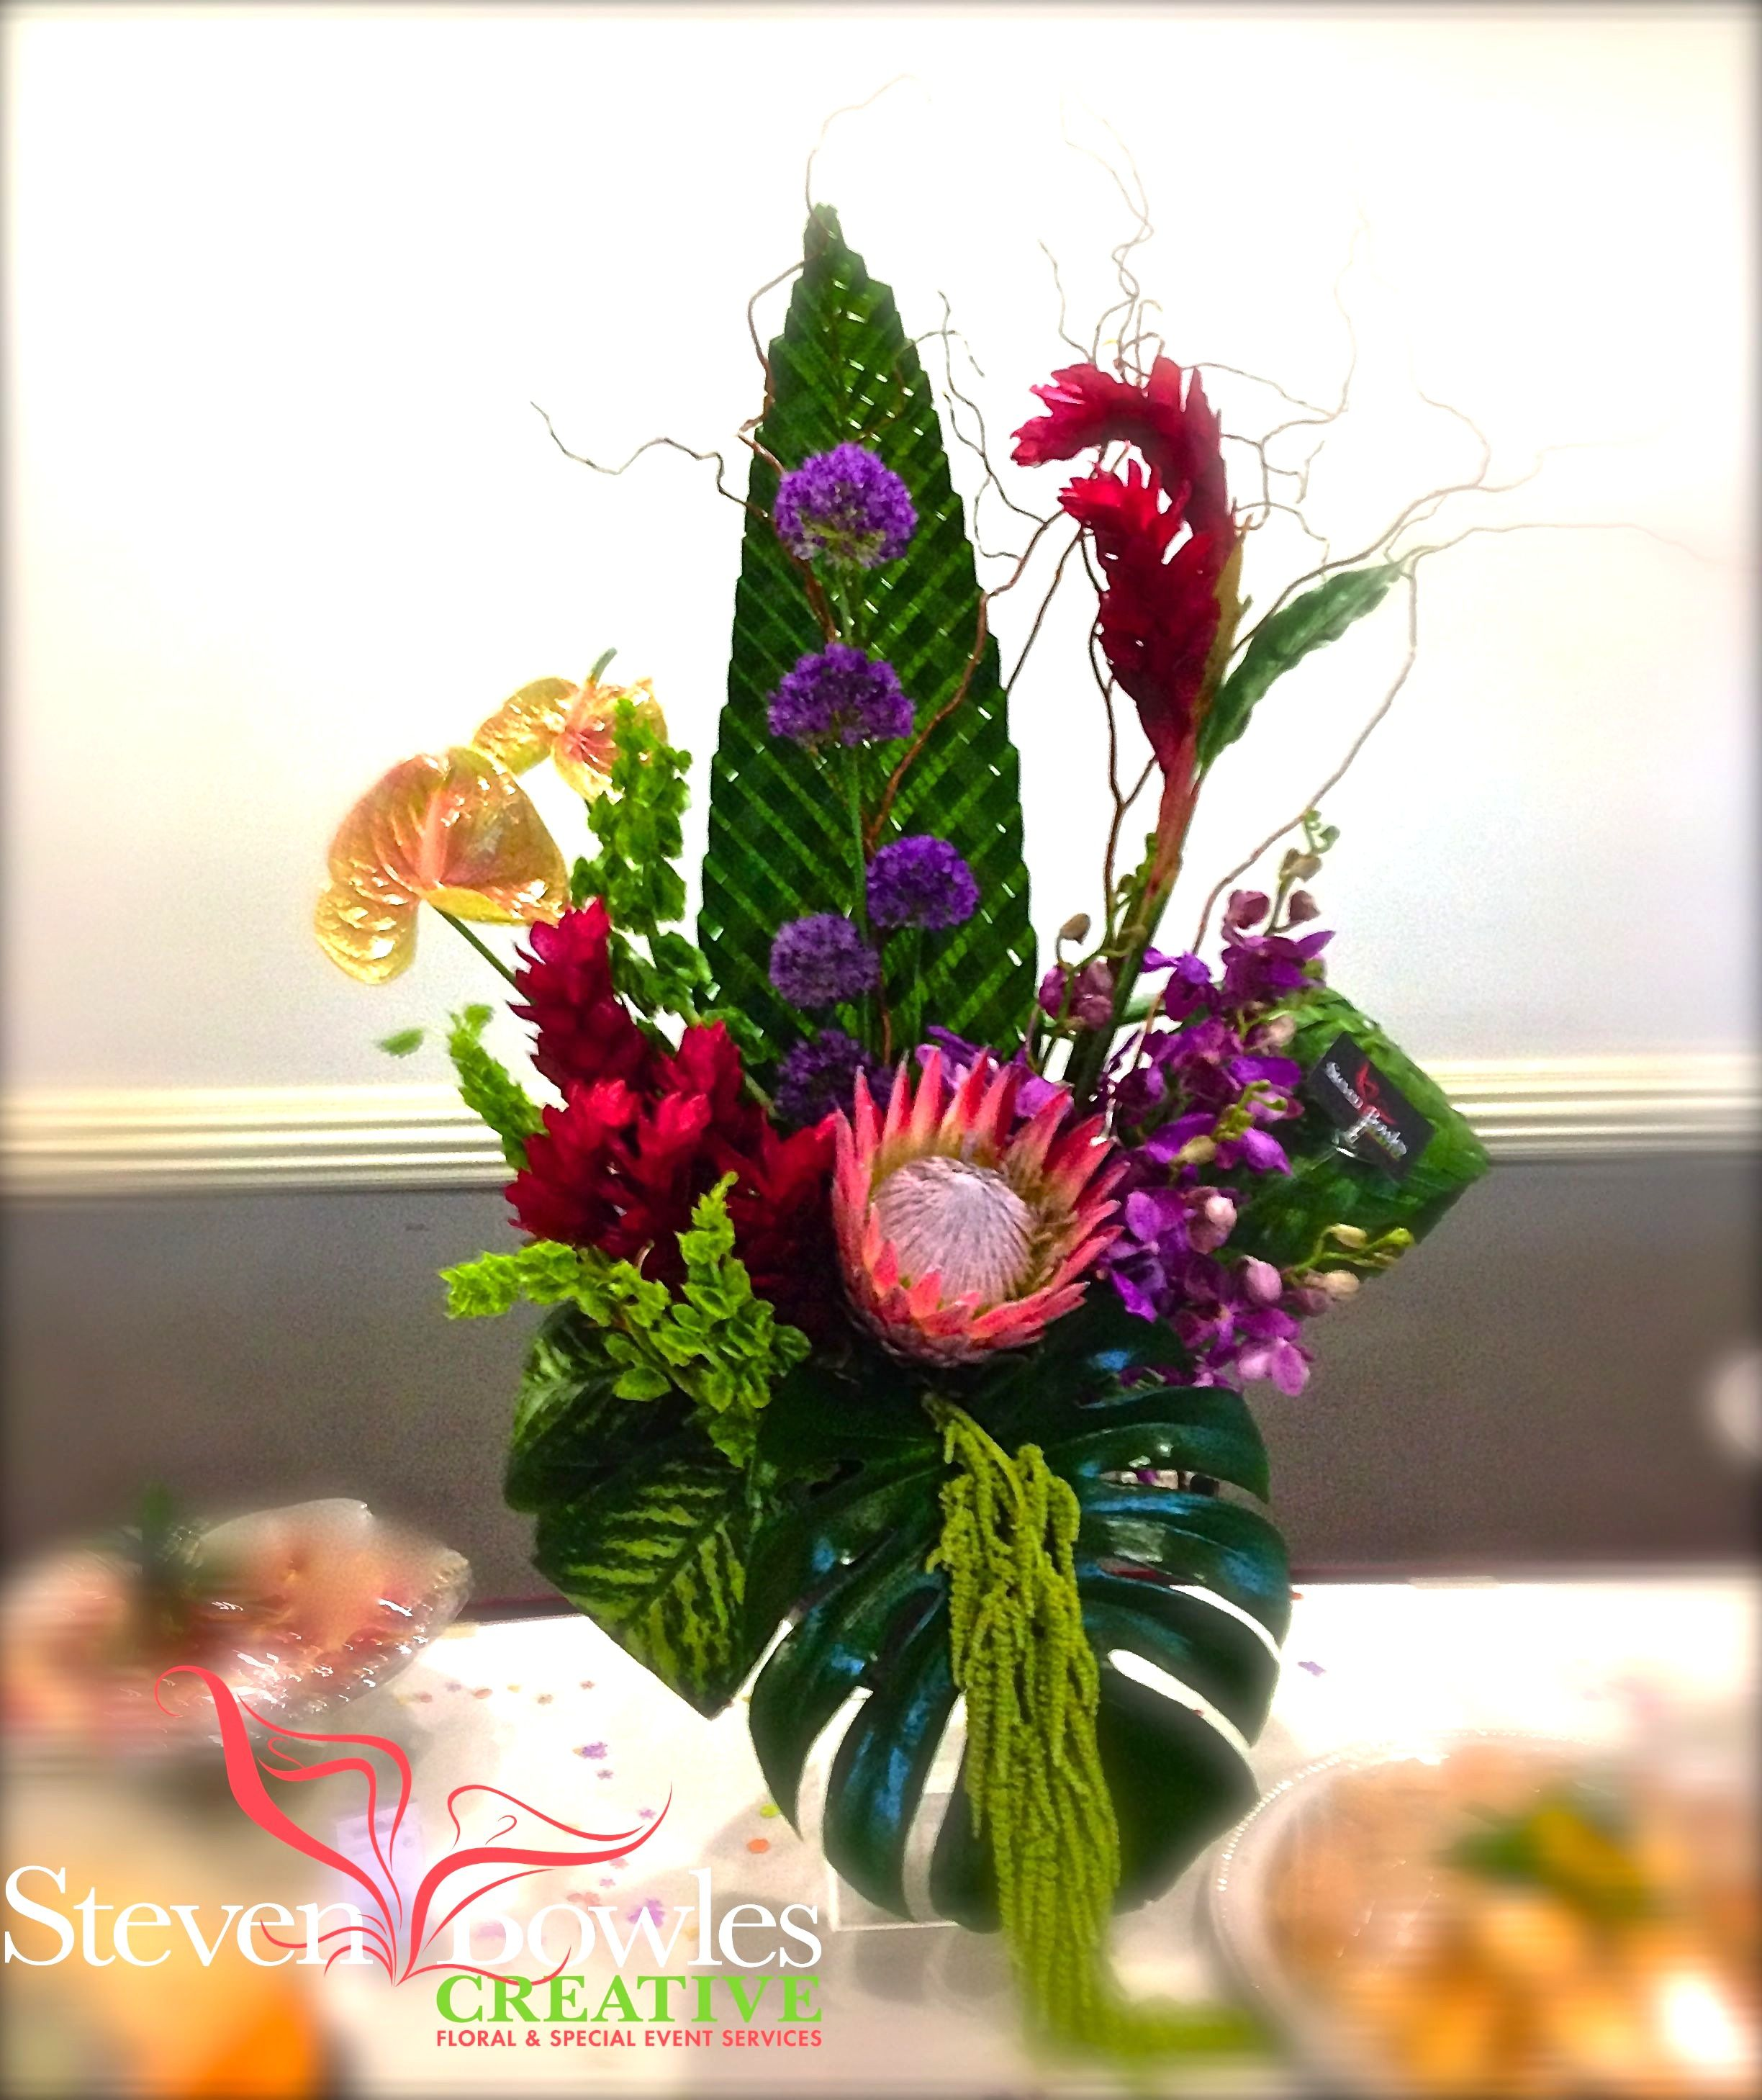 Tropical Flower Arrangement Large Tropical Arrangement Of Ginger King Protea Anthuriums Orchids And Woven Palm Fronds Designed By Steven Bowles Creative